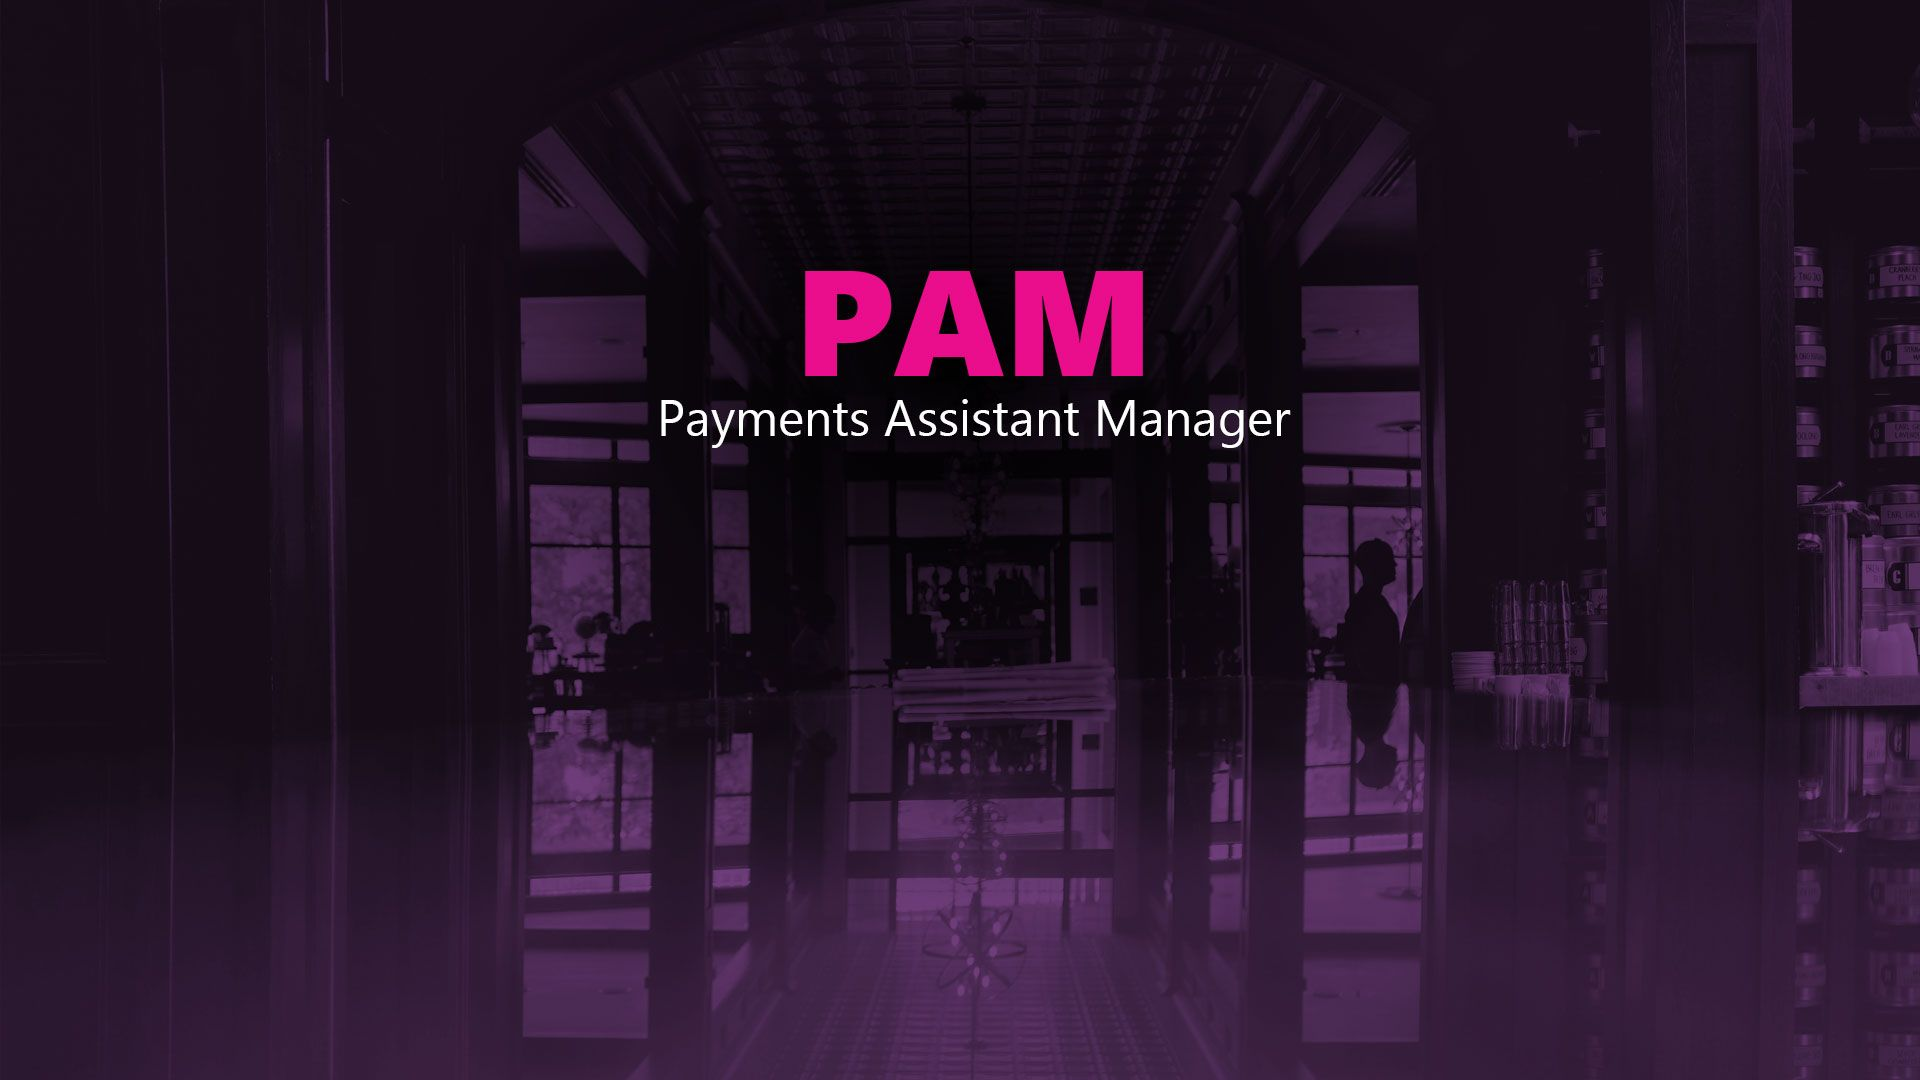 Payments Assistant Manager (PAM)